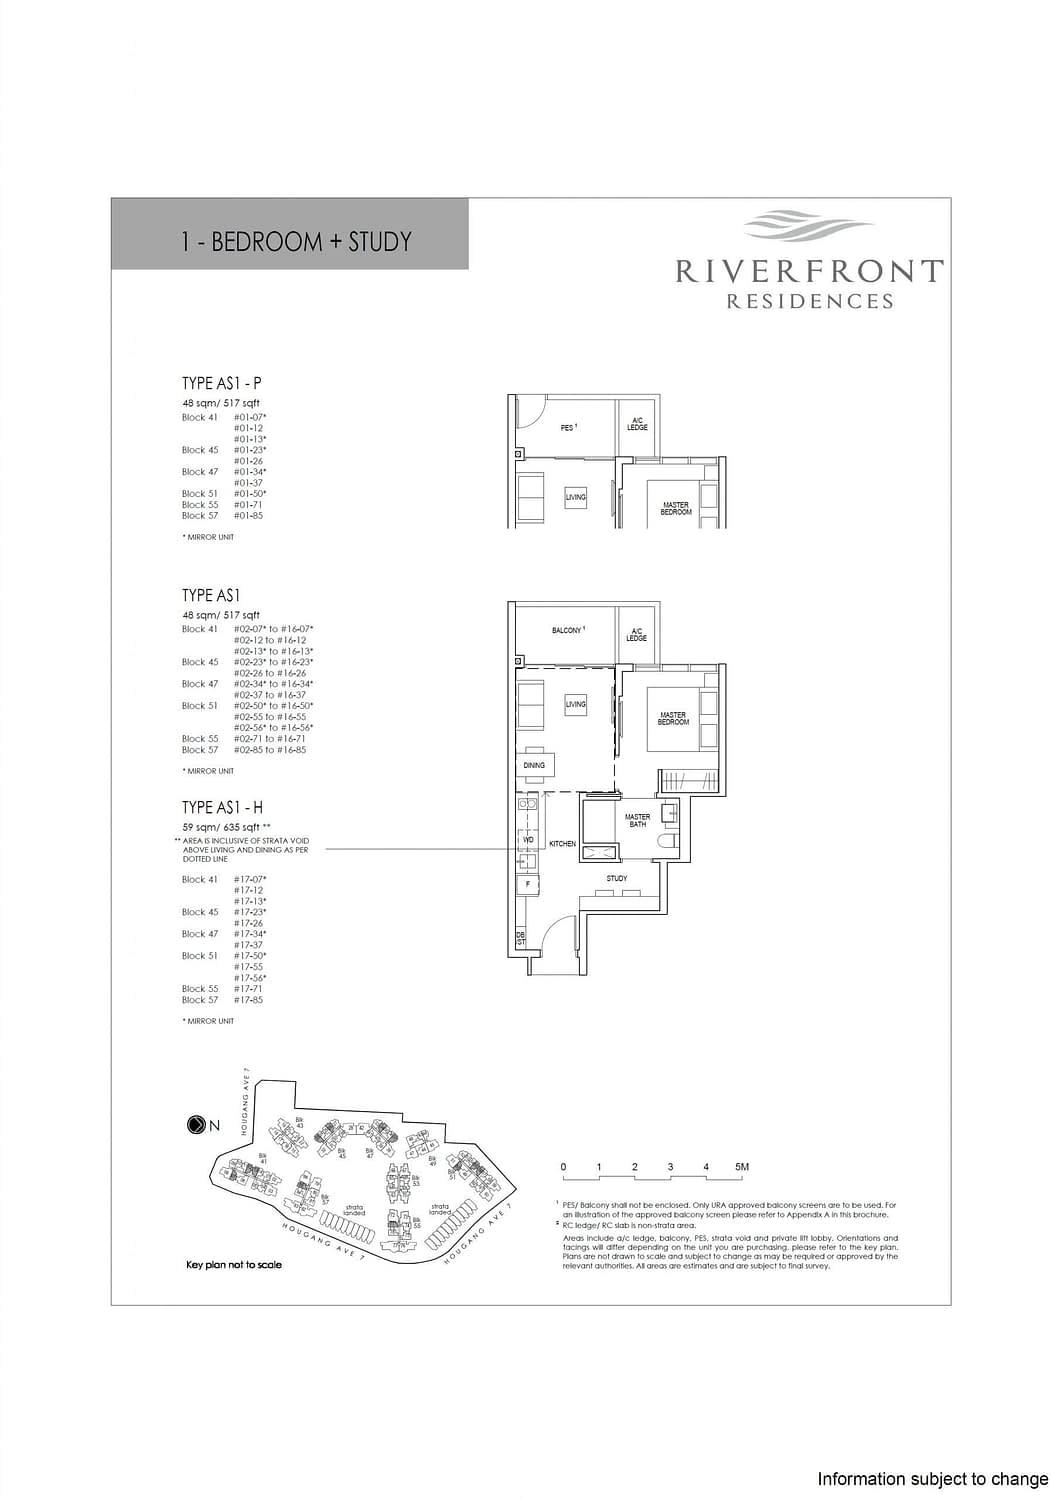 Riverfront Residences Riverfront Residences Floorplan AS1 scaled